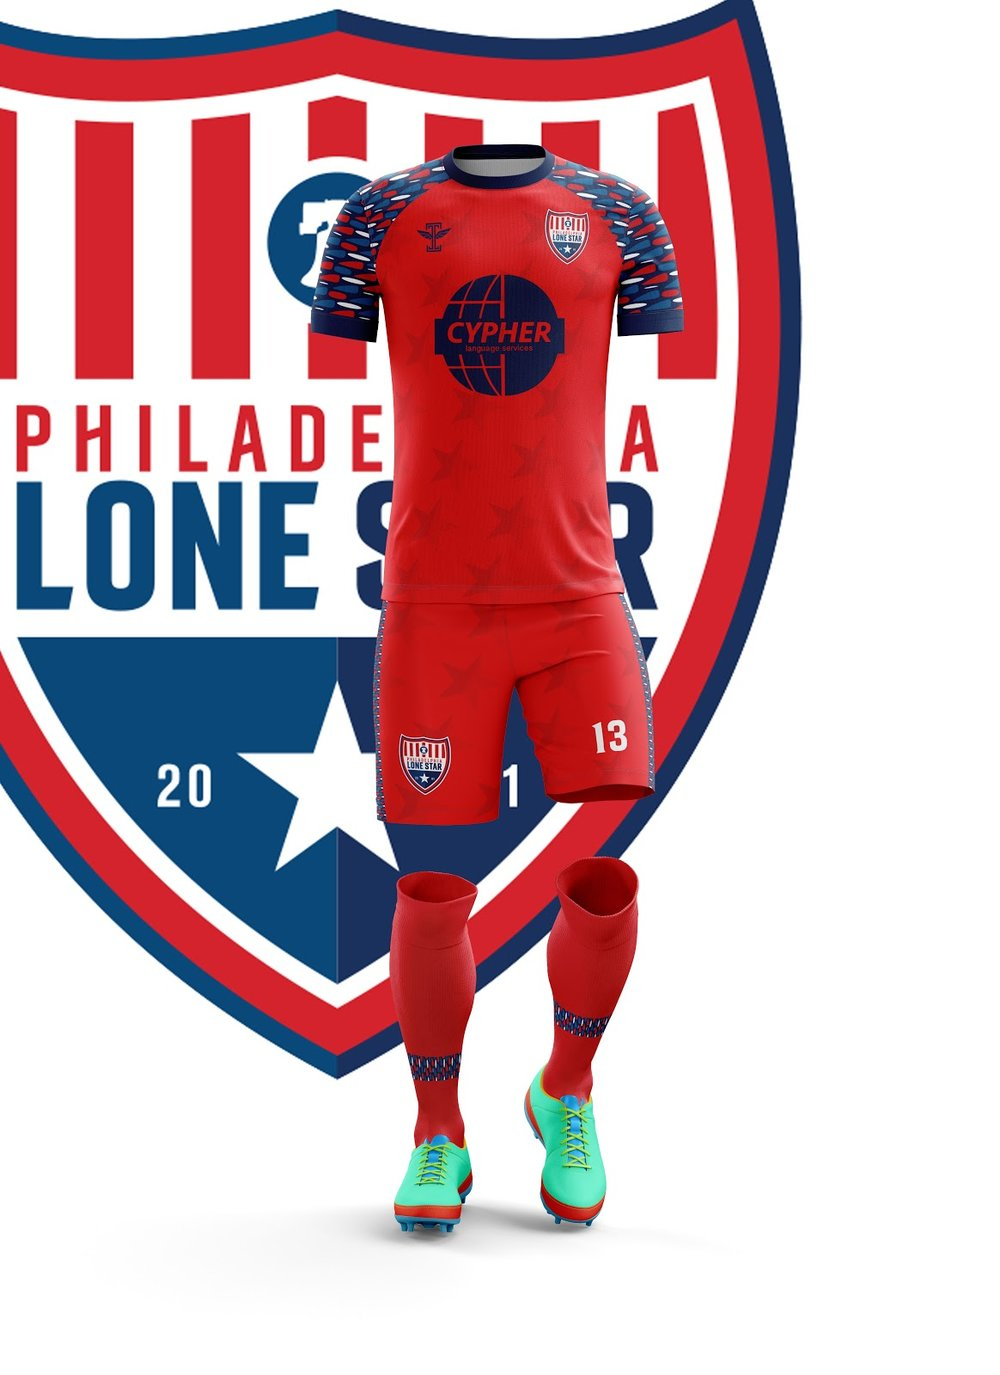 Philadelphia Lone Star African Red Star Kit 2.jpg